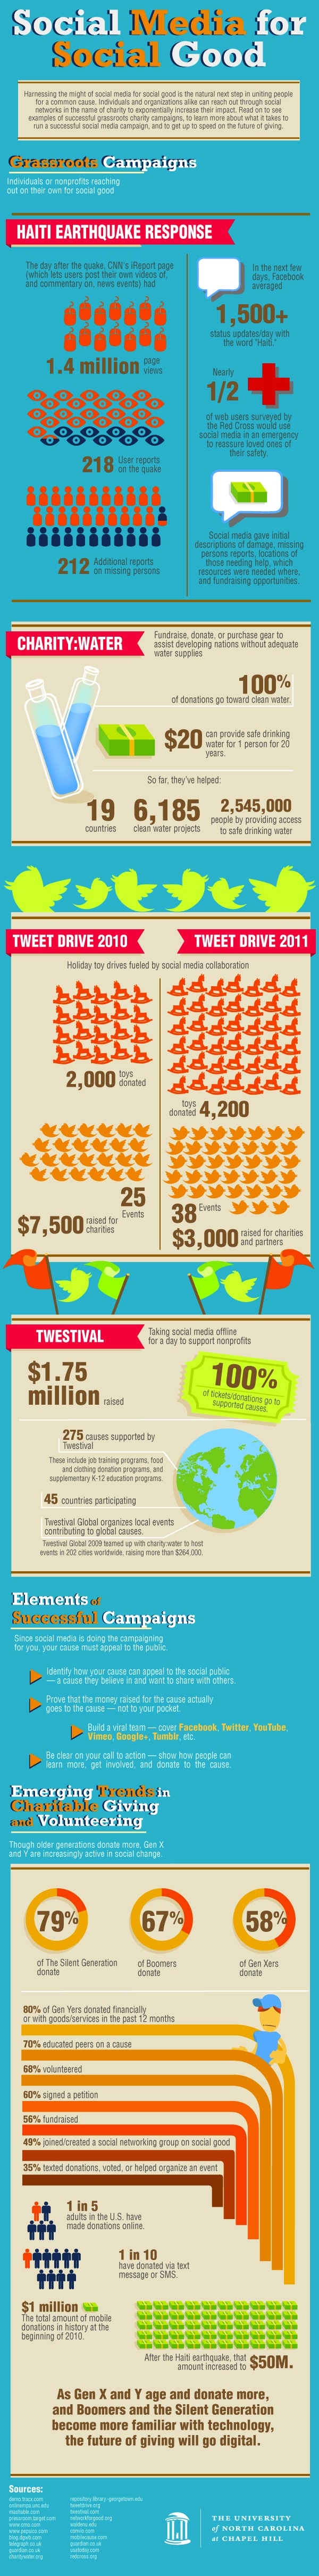 Social Media Impact on Society-Infographic